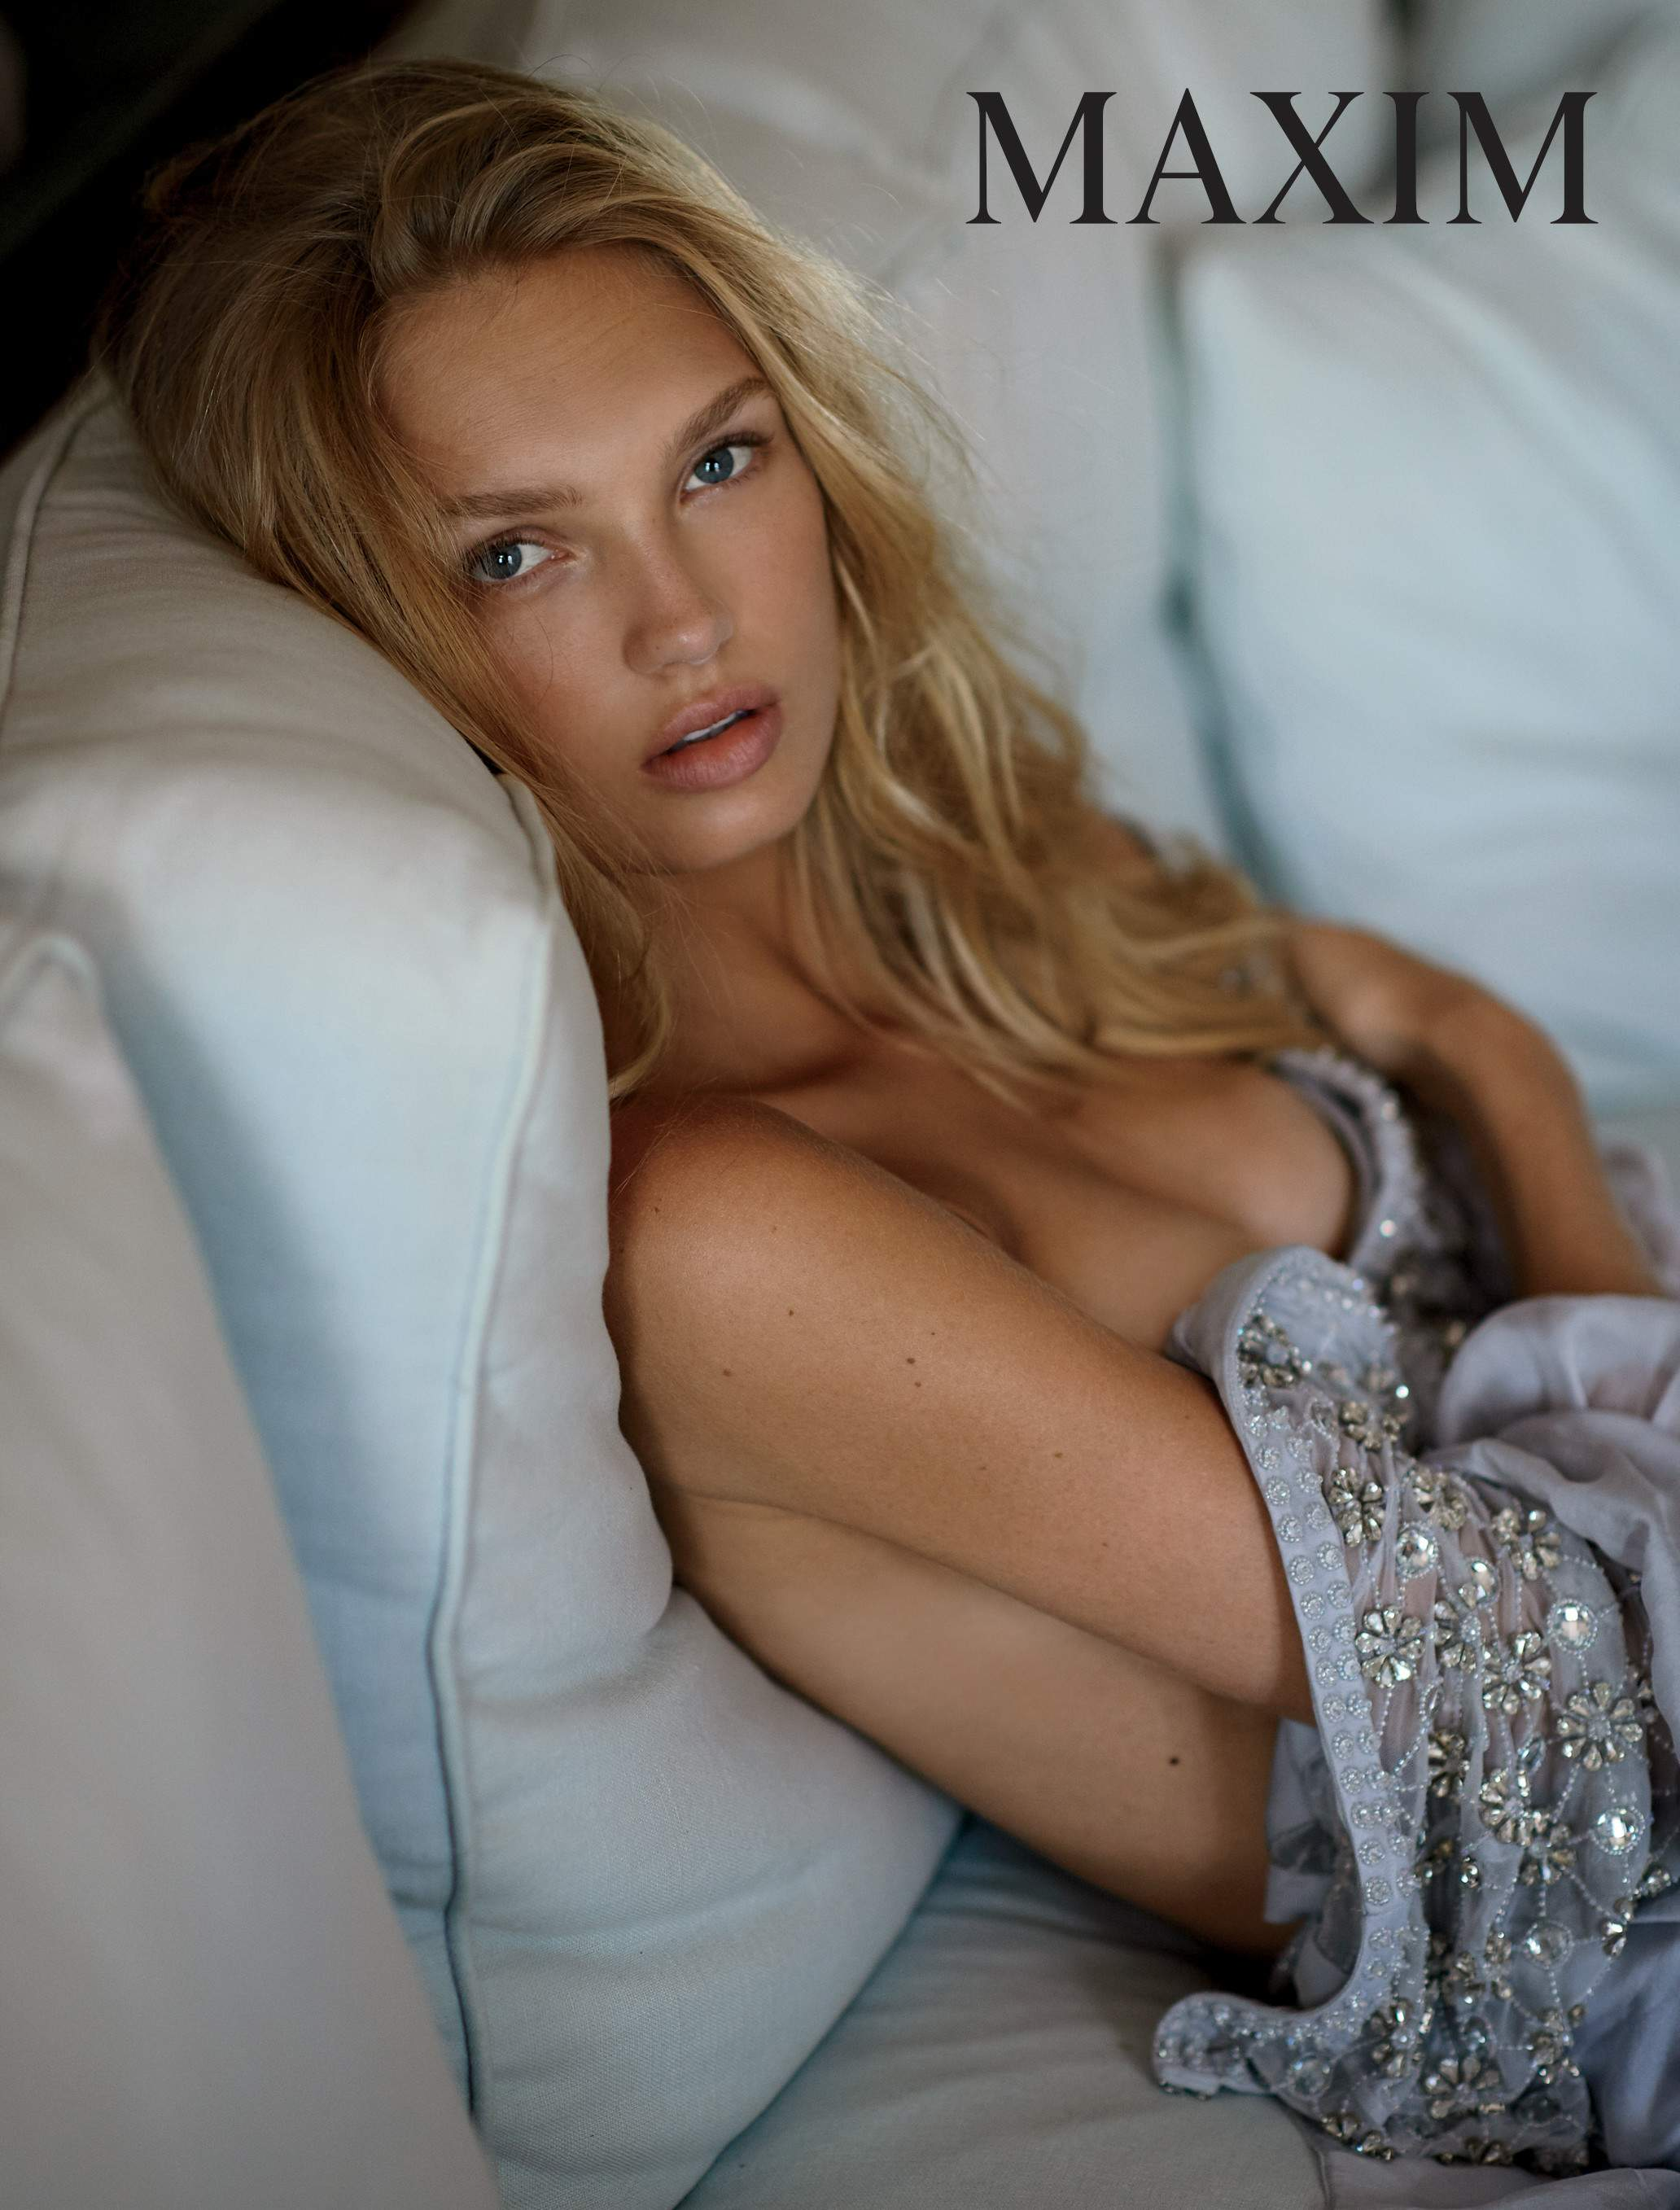 Topless Photos Romee Stri...